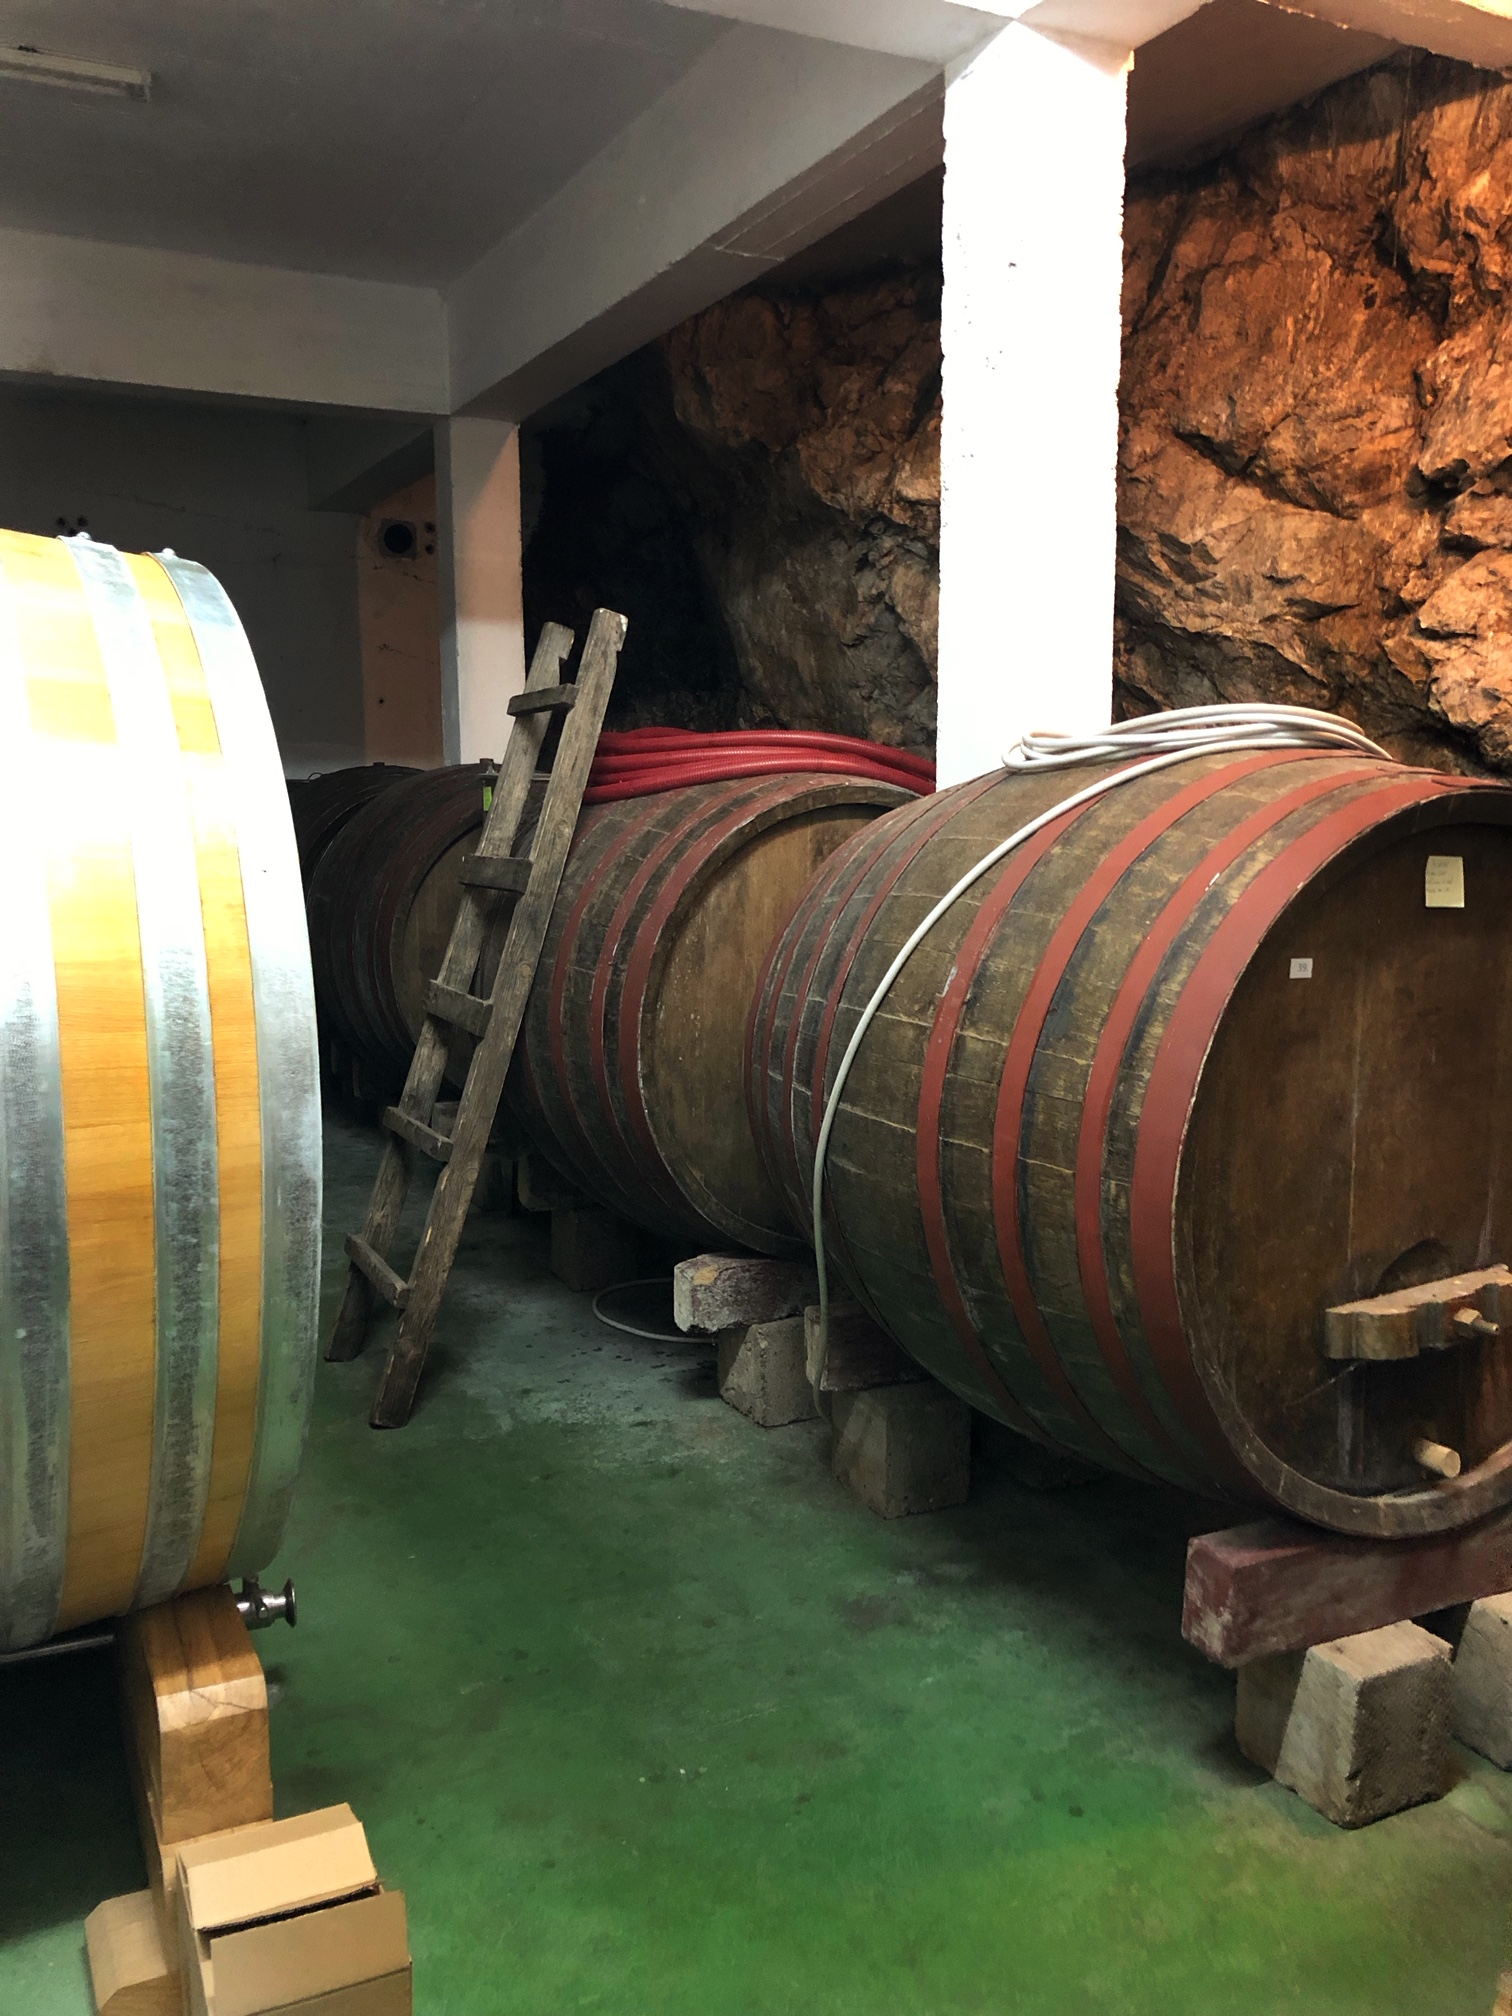 milos winery, croatia, the-alyst.com